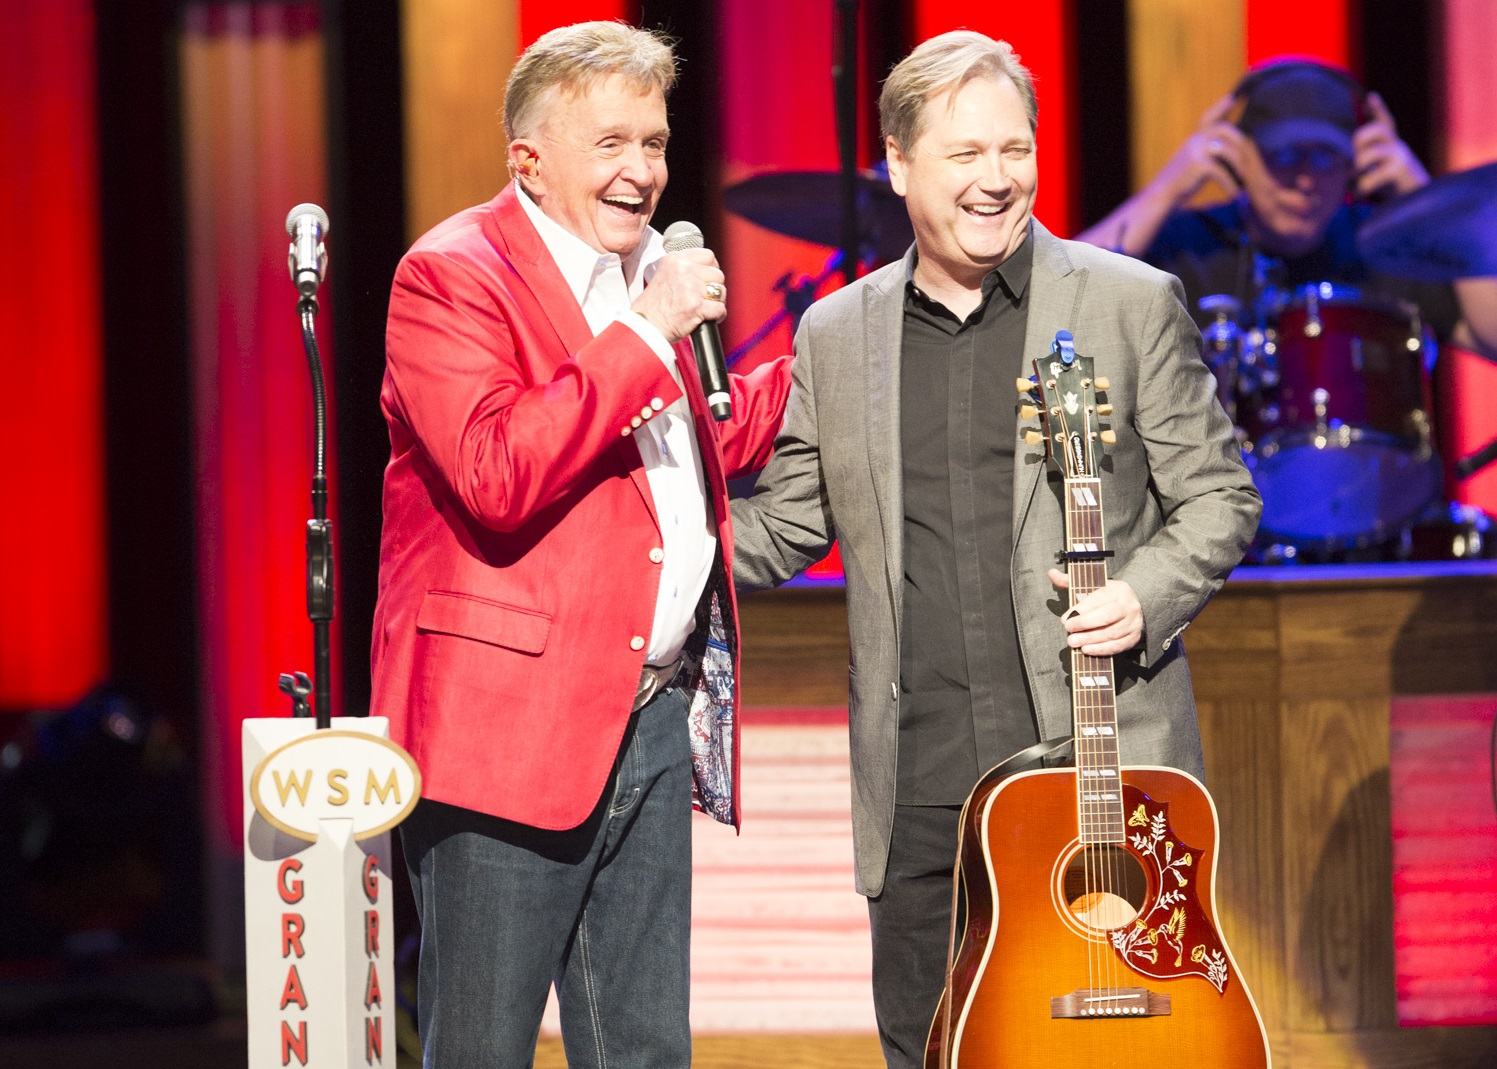 Steve Wariner Celebrates 20 Years As Opry Member